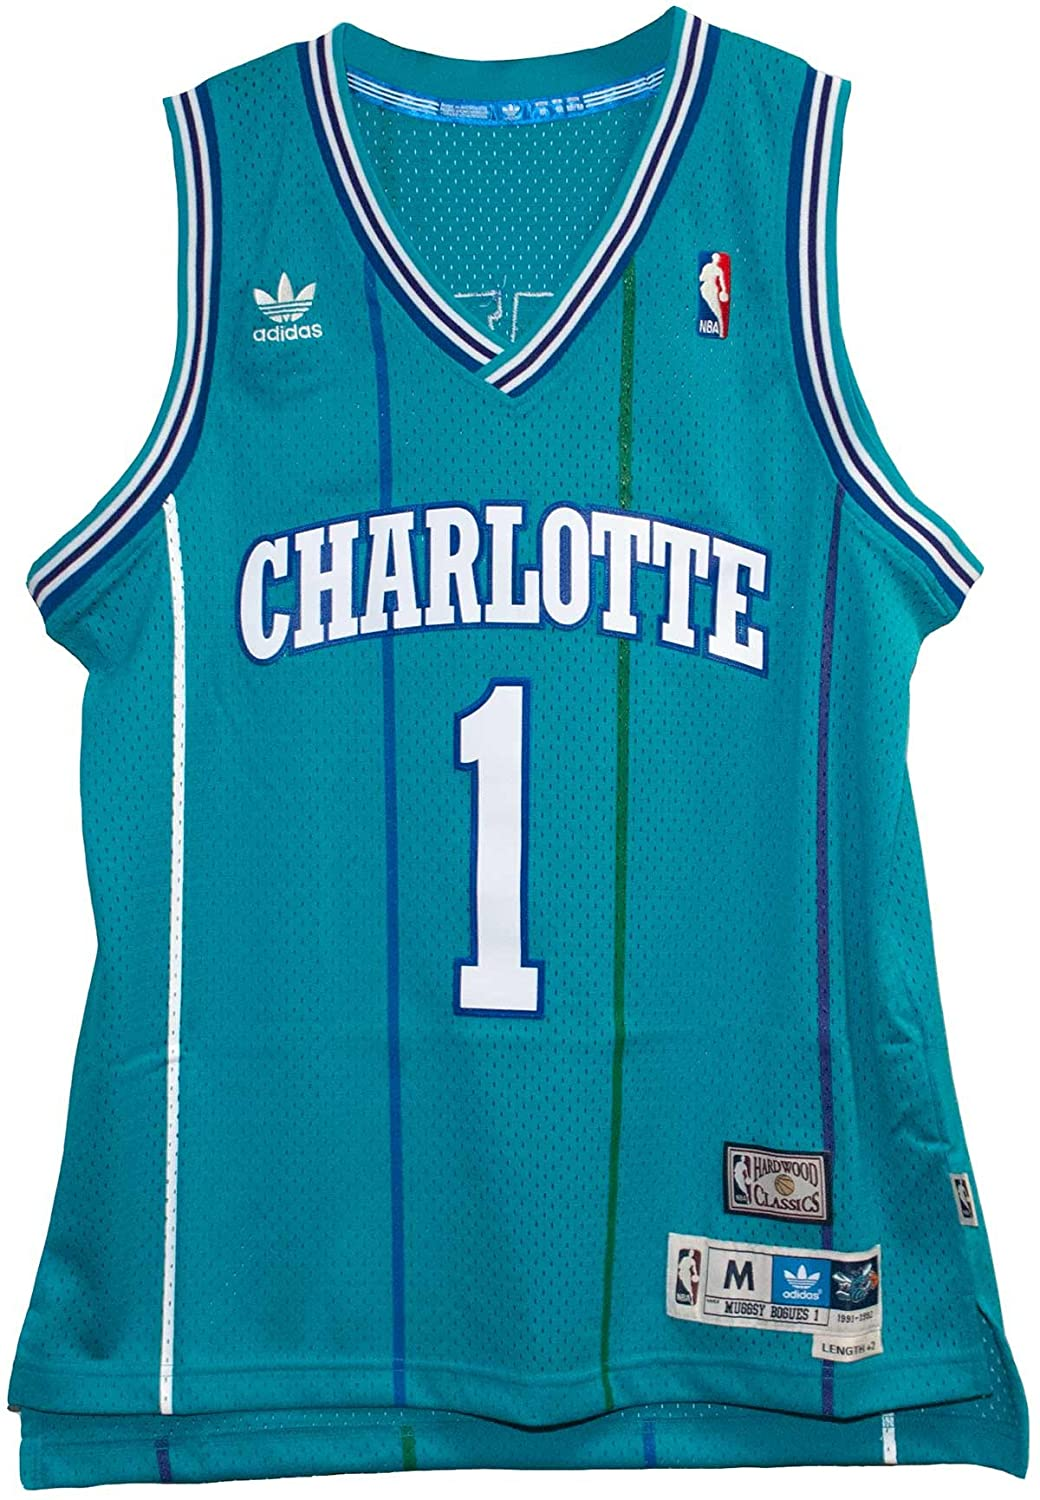 121c75c3a Amazon.com   Muggsy Bogues New Swingman Charlotte Hornets Adult Size Jersey  (2014-2015)   Sports   Outdoors